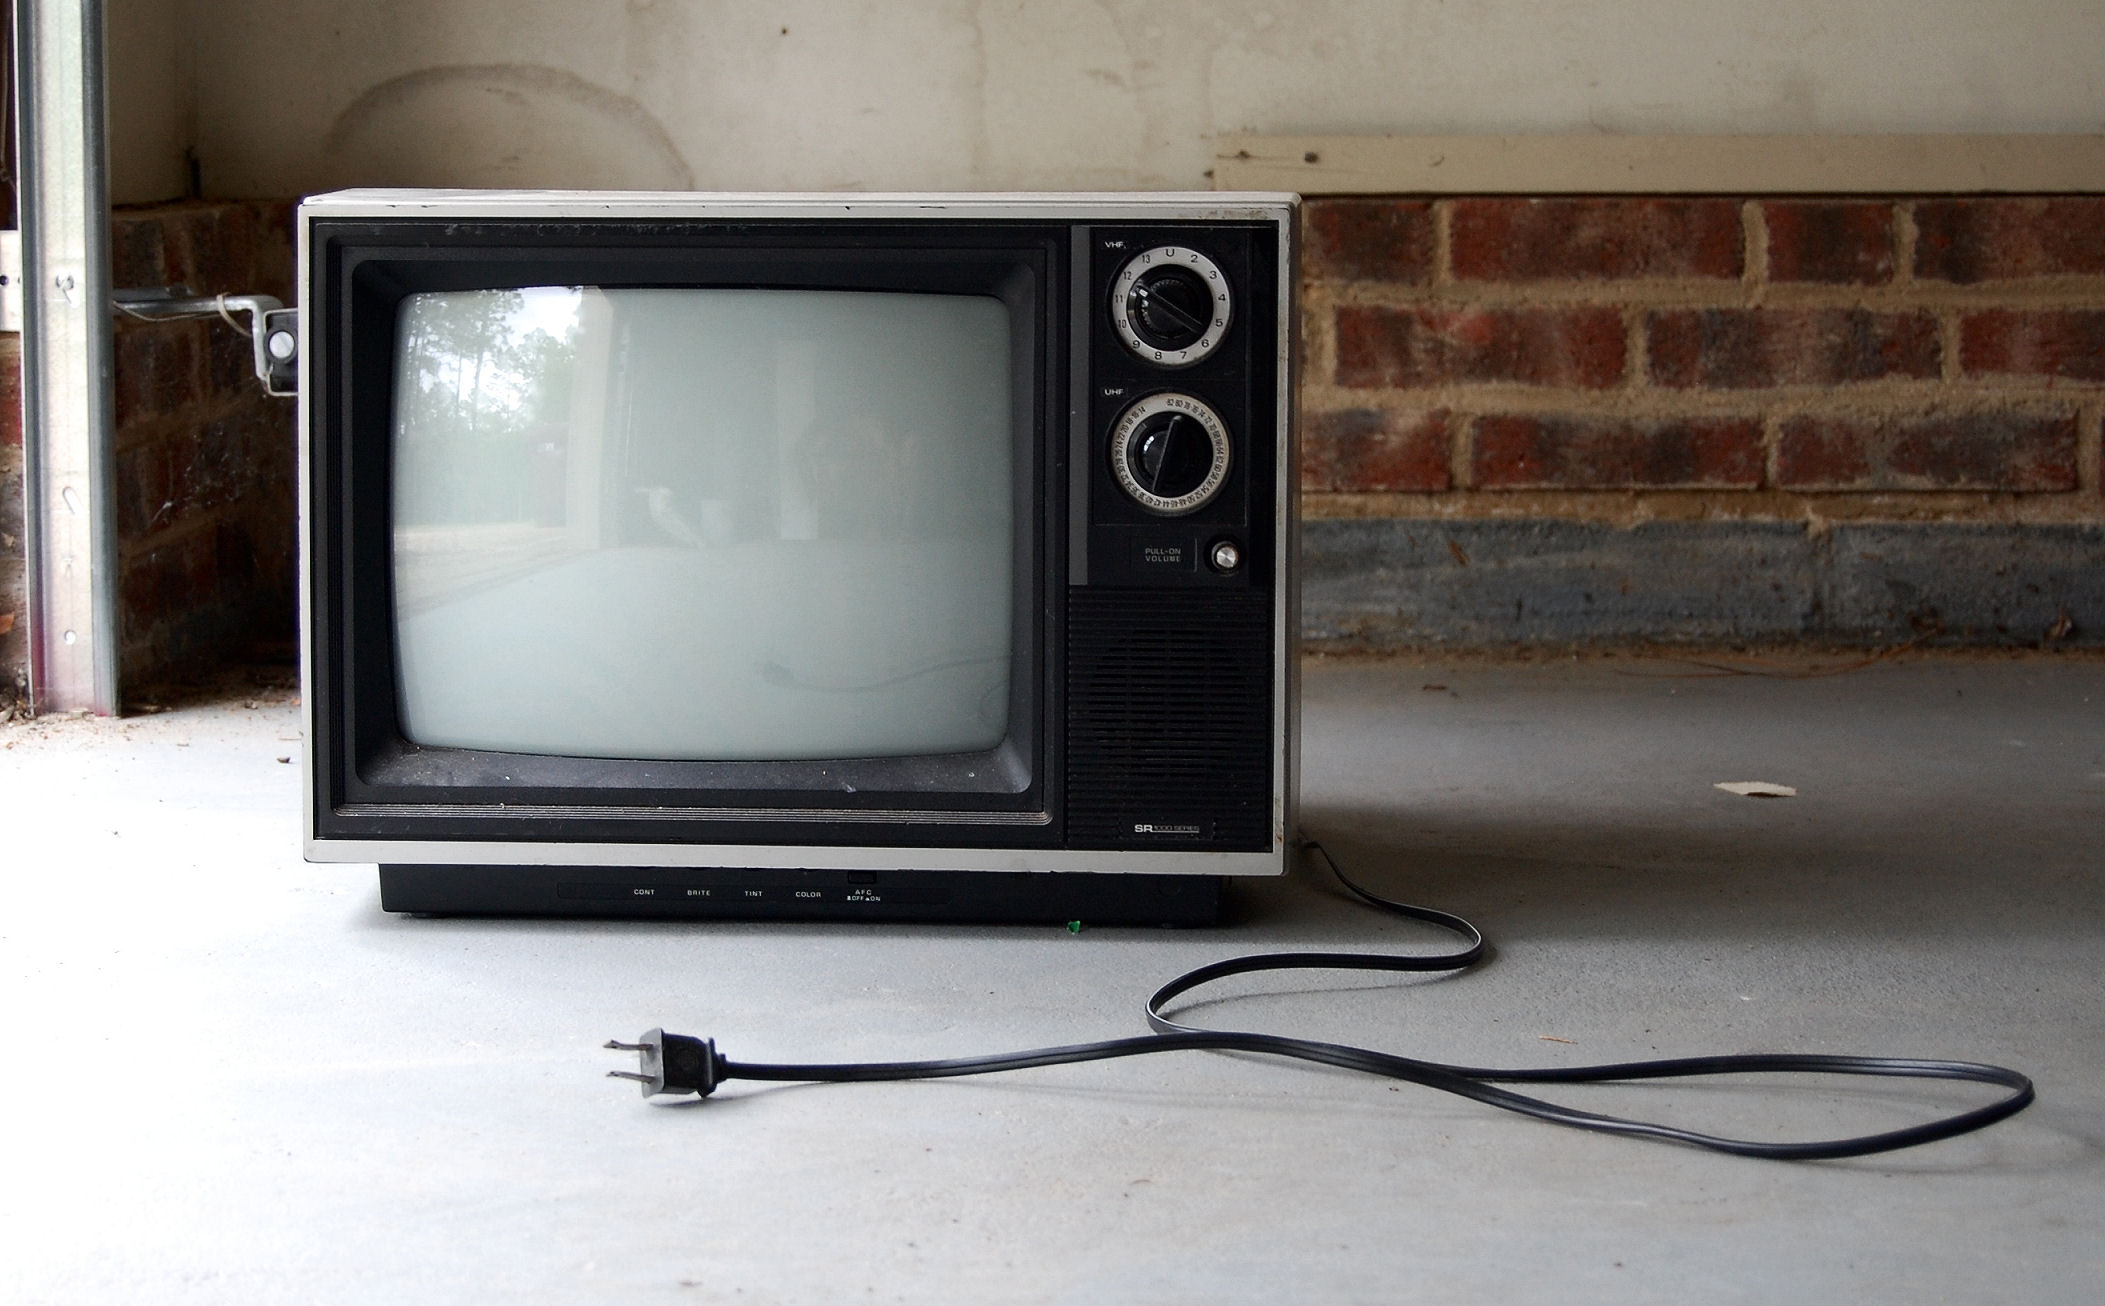 Vintage Television Wallpaper Images & Pictures - Becuo